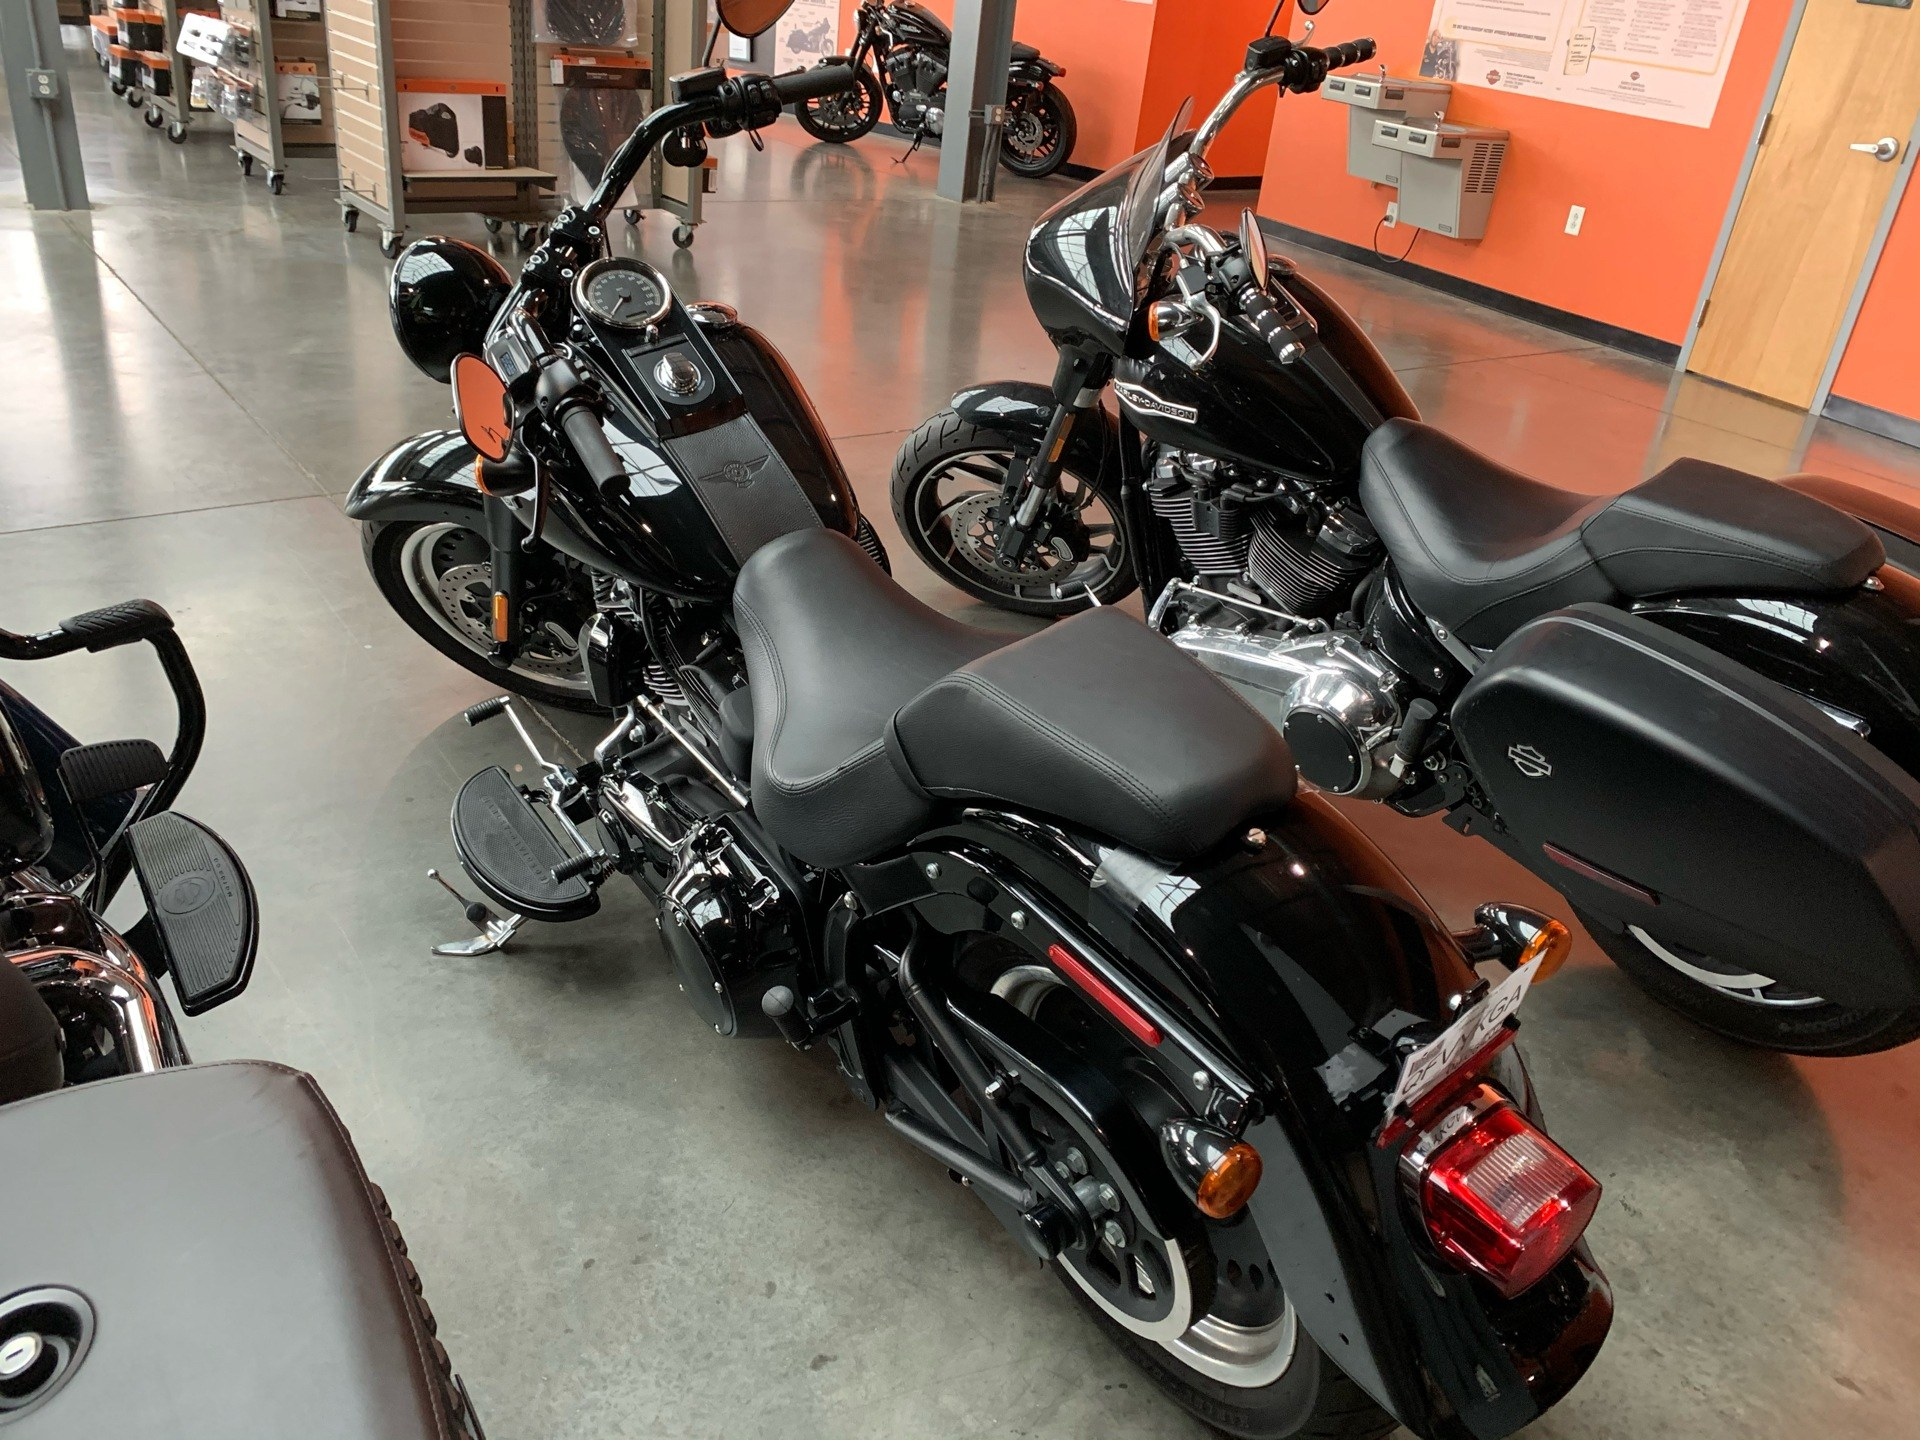 2017 Harley-Davidson FAT BOY S in Columbia, Tennessee - Photo 6